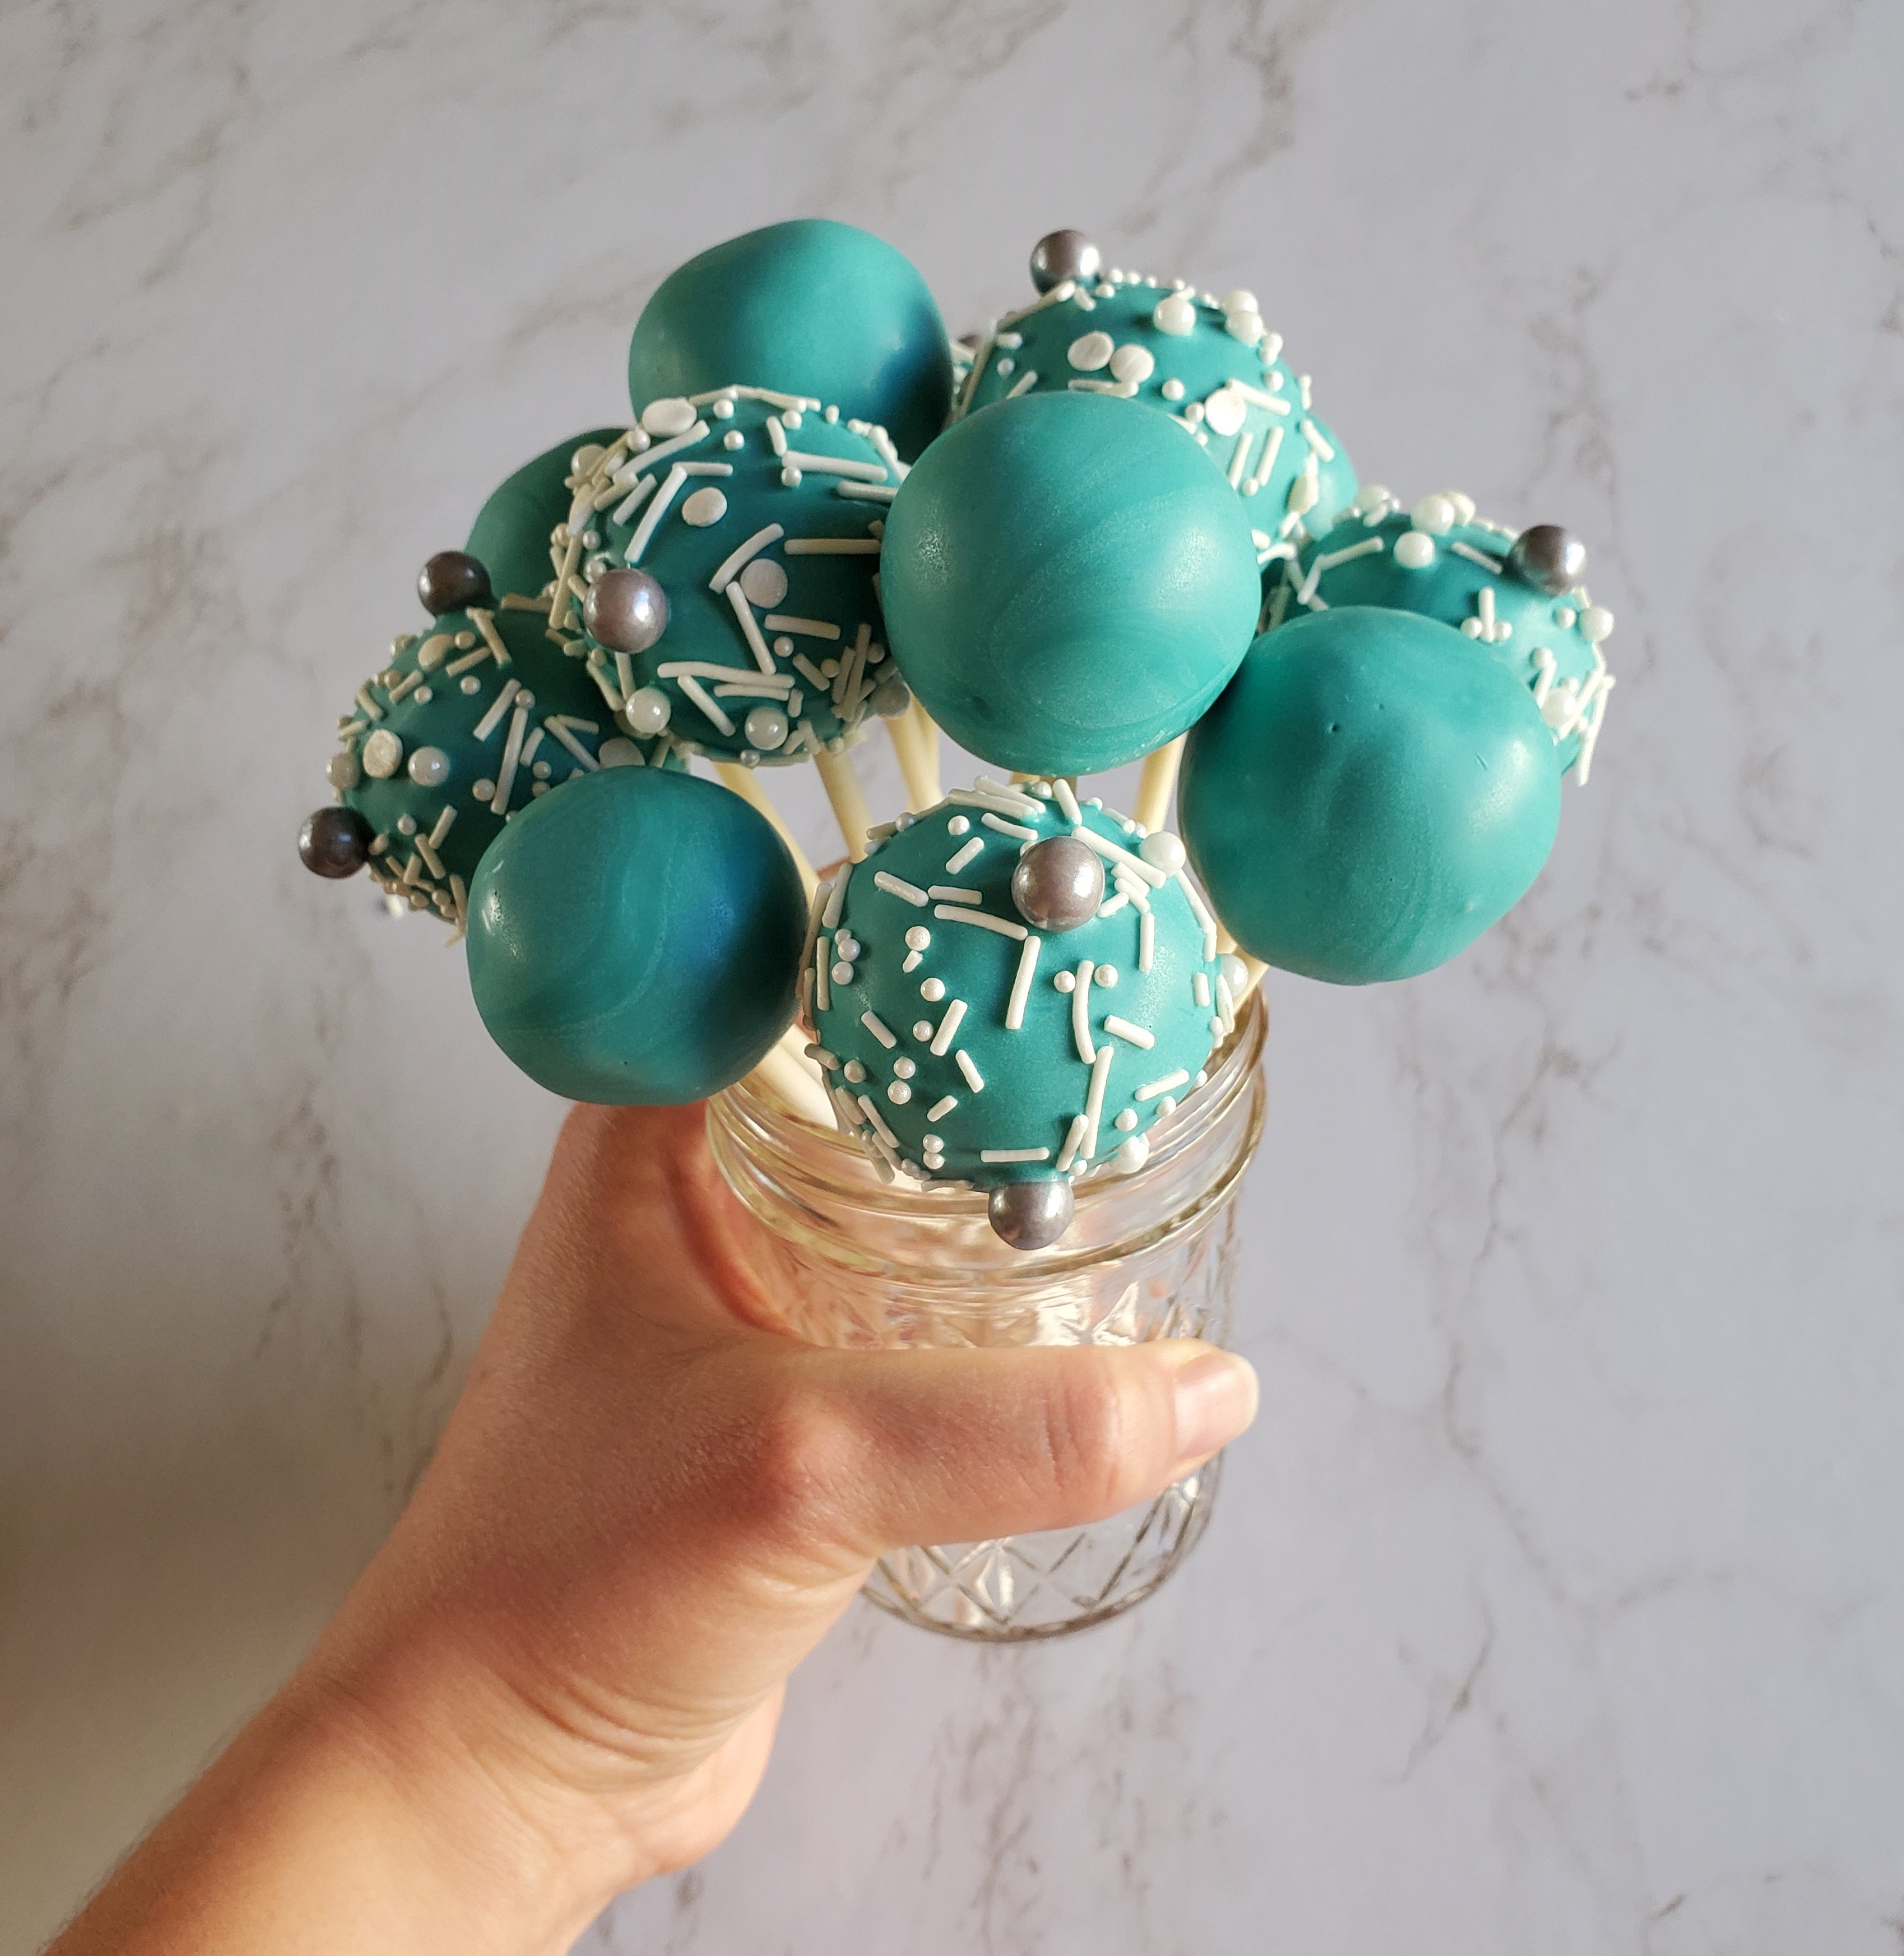 A bouquet of turquoise sprinkled cake pops in a glass jar, held up by a hand in front of a marble background.